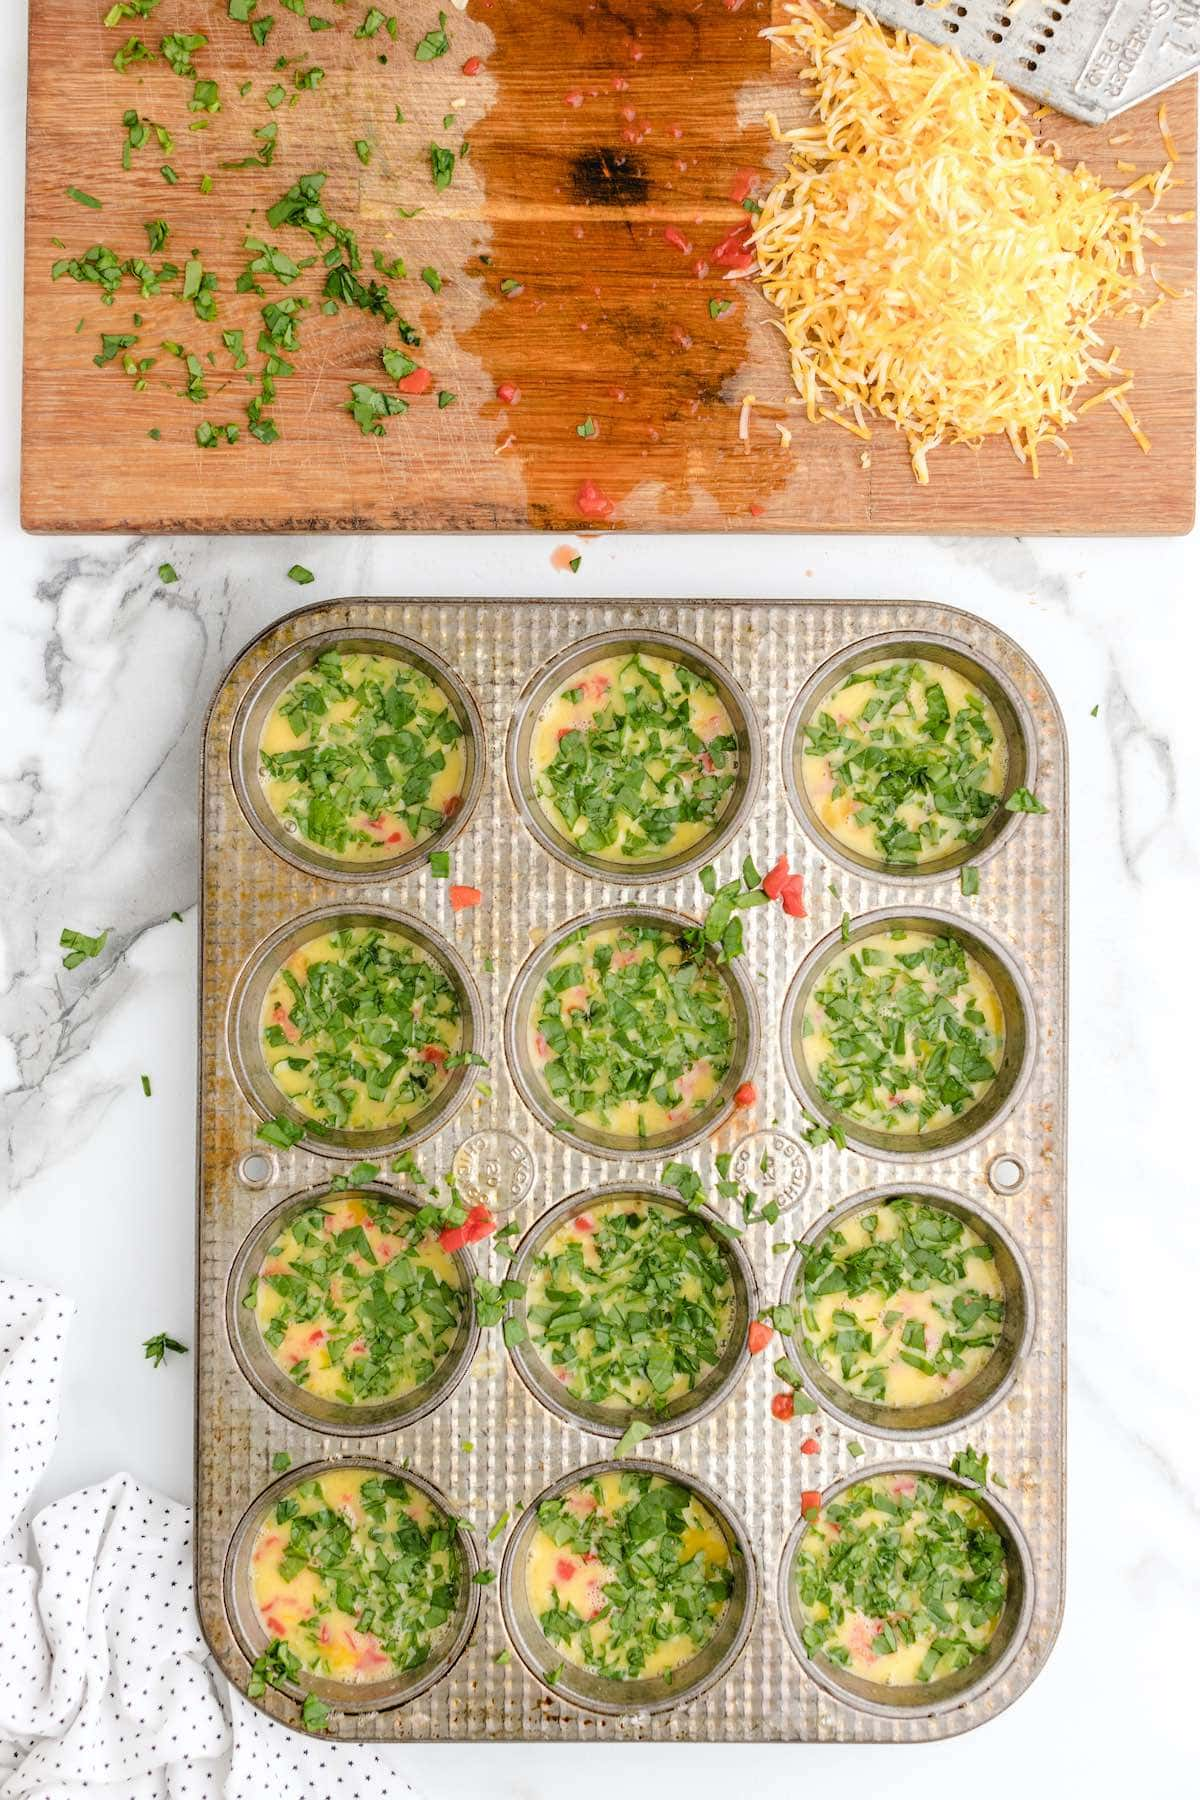 Add spinach to each muffin stain